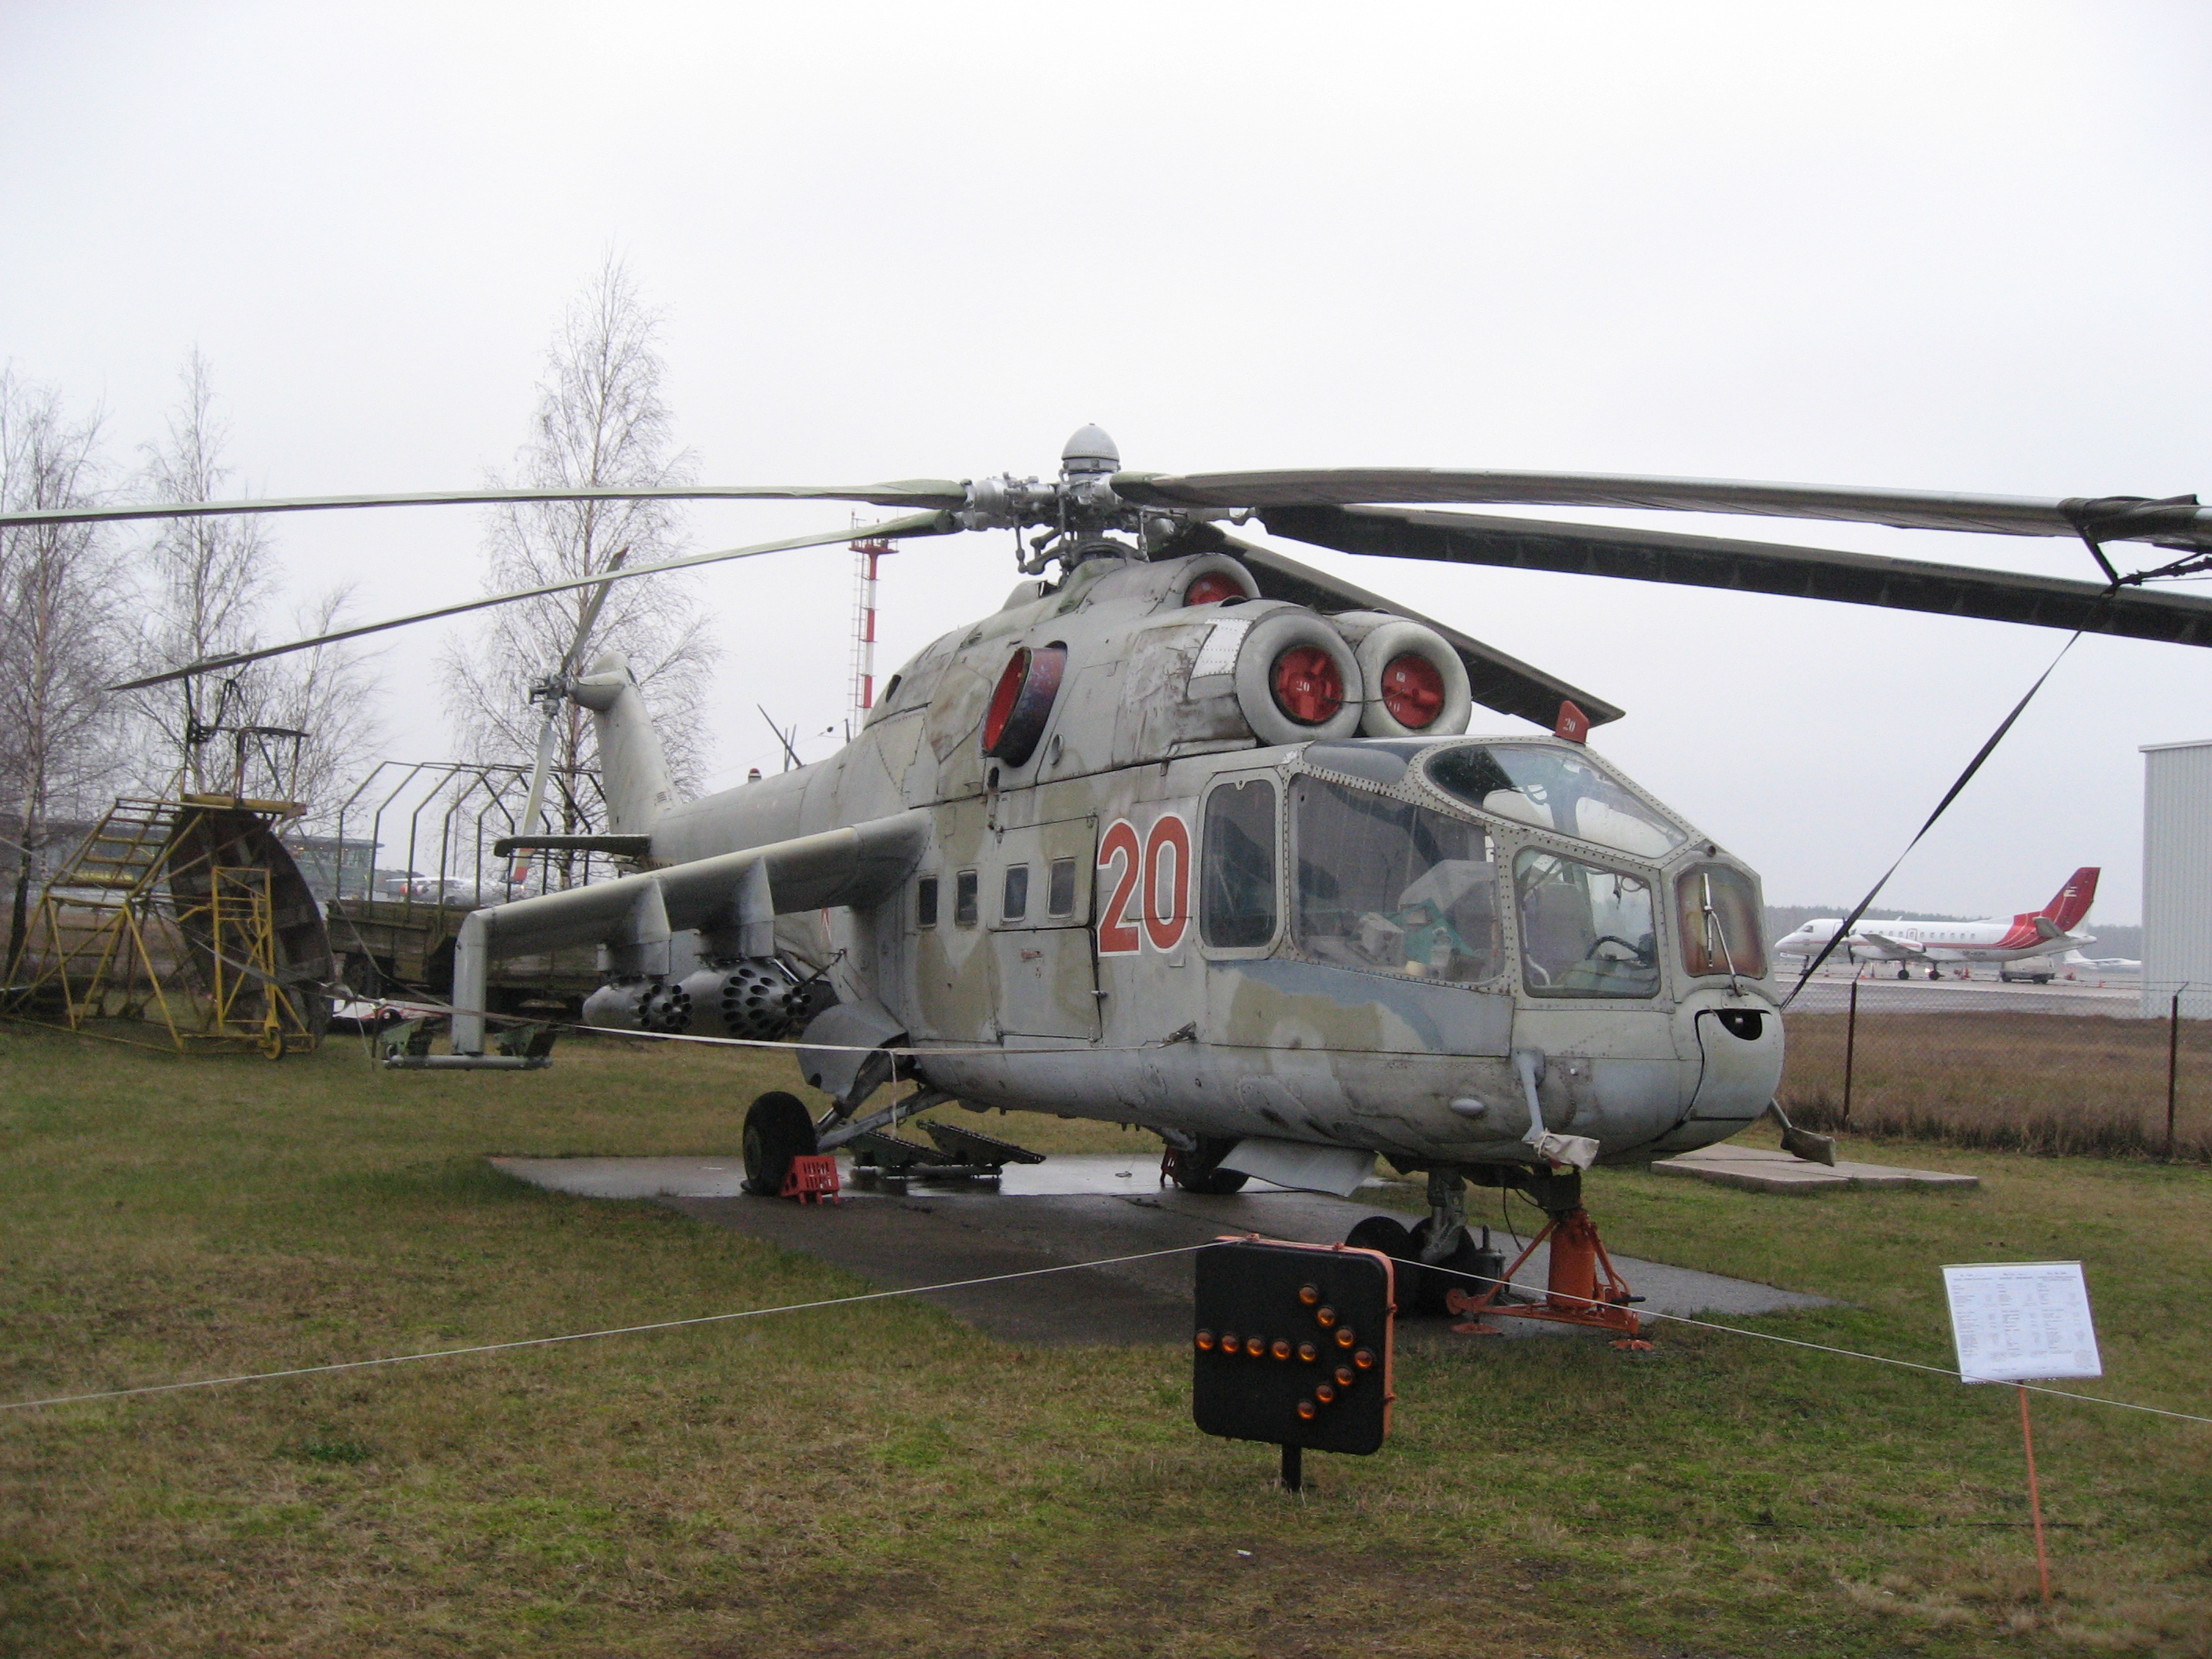 list of russian helicopters with Mil Mi 24 Hind Assault And Attack on Electronic Cigarette Vape Storm V50 Tc 50w Box Mod Sub Ohm Temperature Control Electronic Hookah Shisha Pen Drop Shipping besides Cvf Pics moreover 75196 together with A New Arms Race Is Exploding Into Asia moreover New Pacific Rim Featurette And Promo Image.